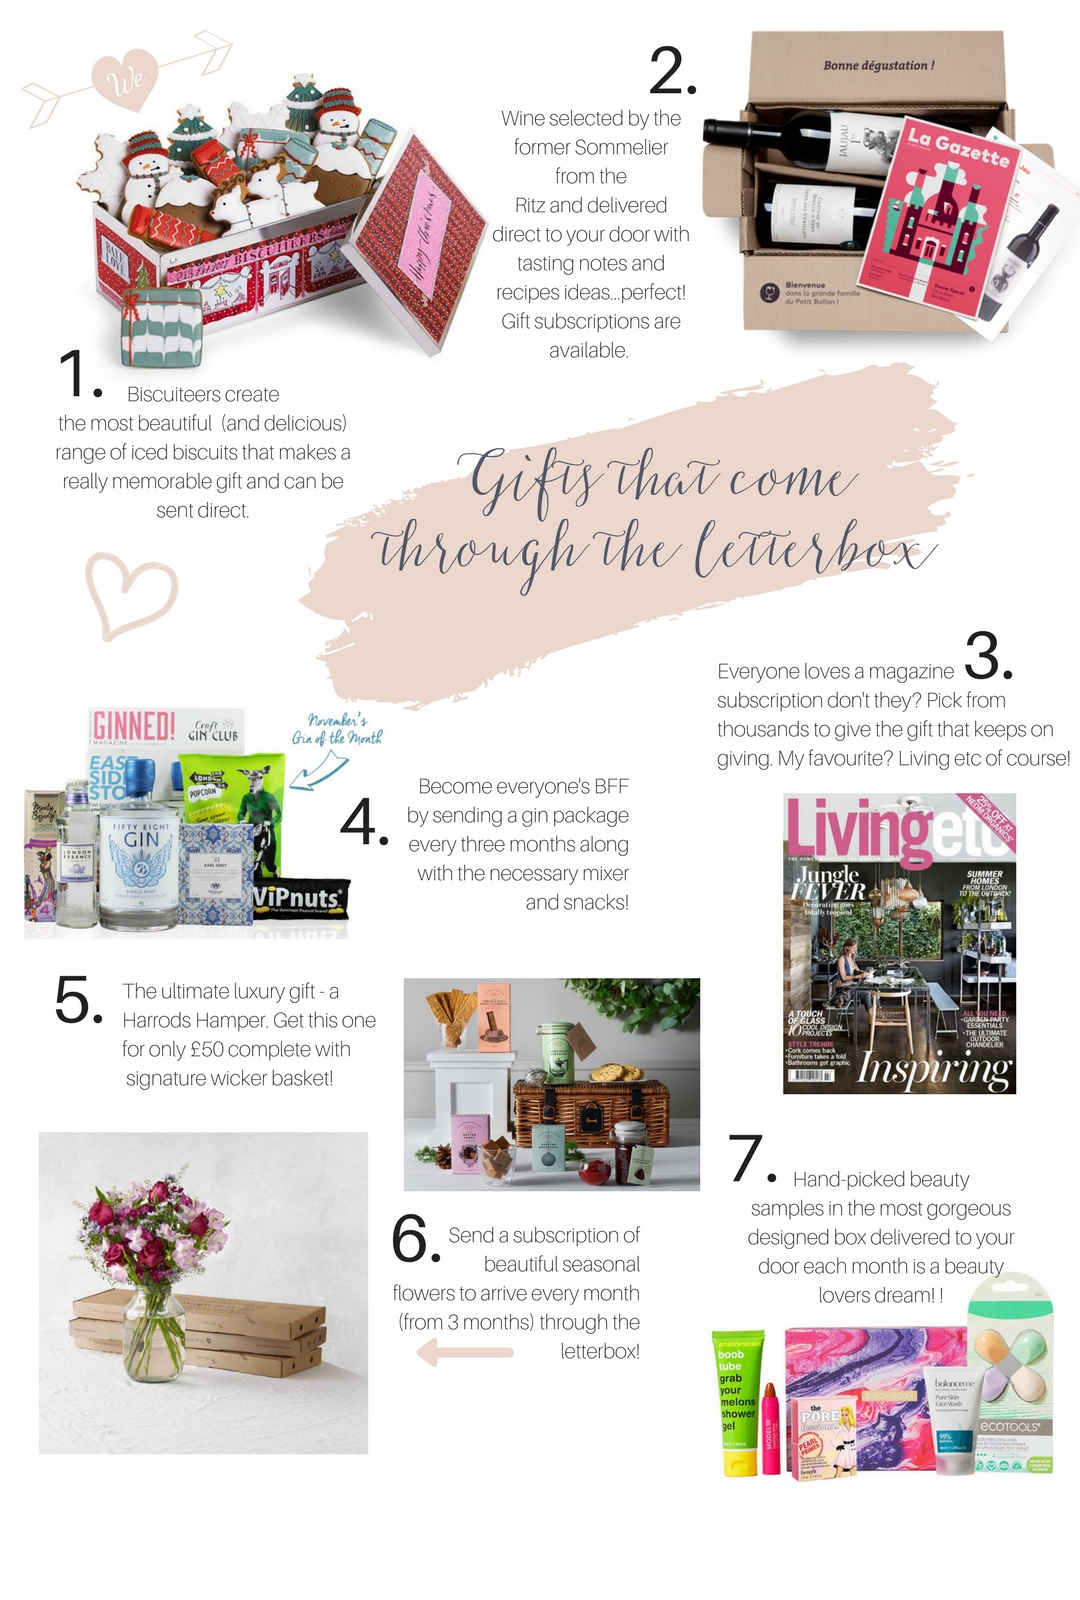 Christmas gift ideas that come through the post